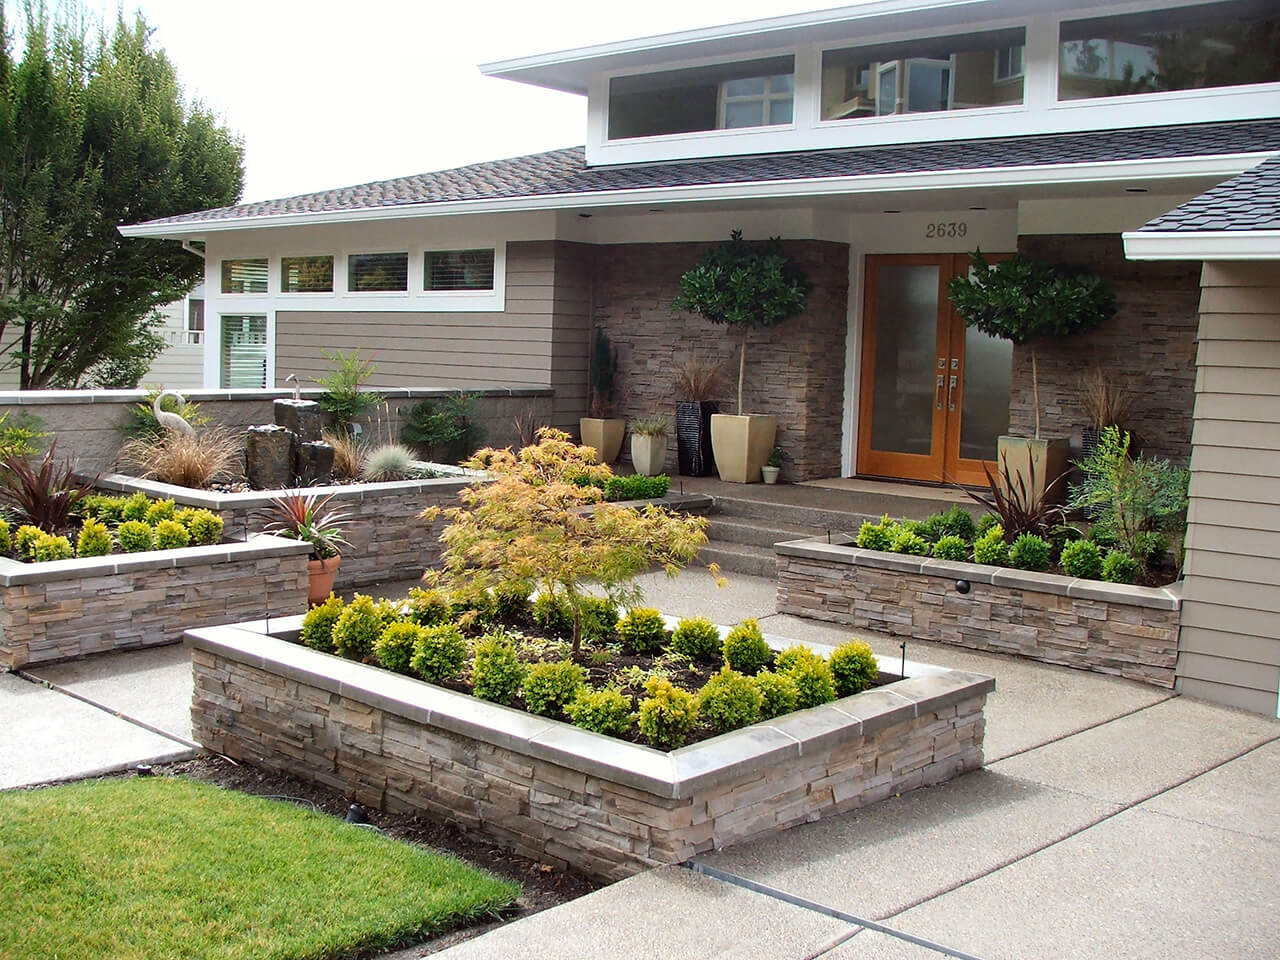 20 brilliant front garden landscaping ideas style motivation for Garden landscaping ideas